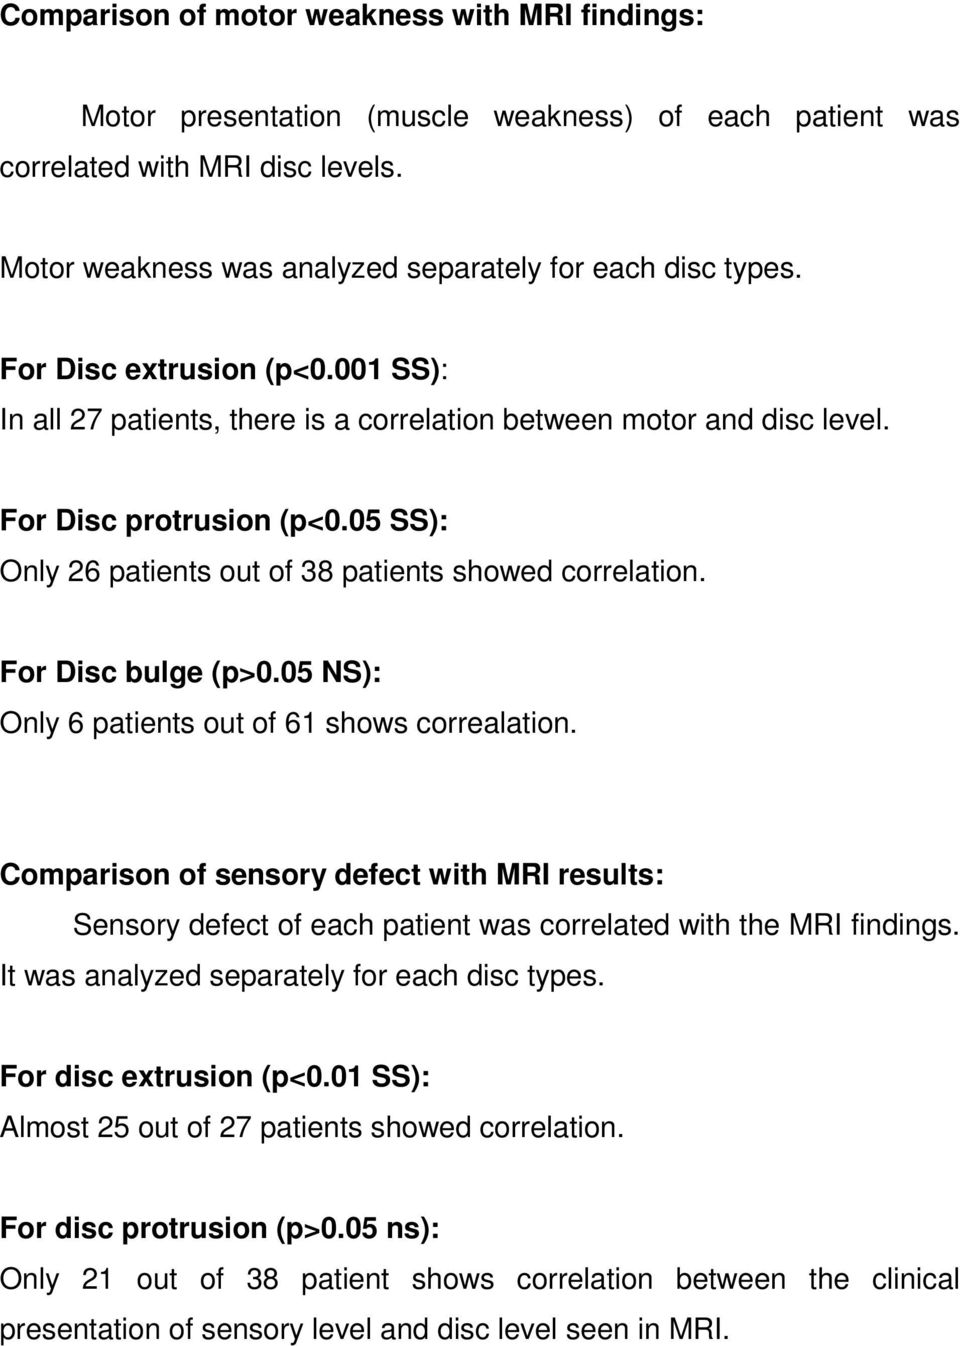 For Disc bulge (p>0.05 NS): Only 6 patients out of 61 shows correalation. Comparison of sensory defect with MRI results: Sensory defect of each patient was correlated with the MRI findings.